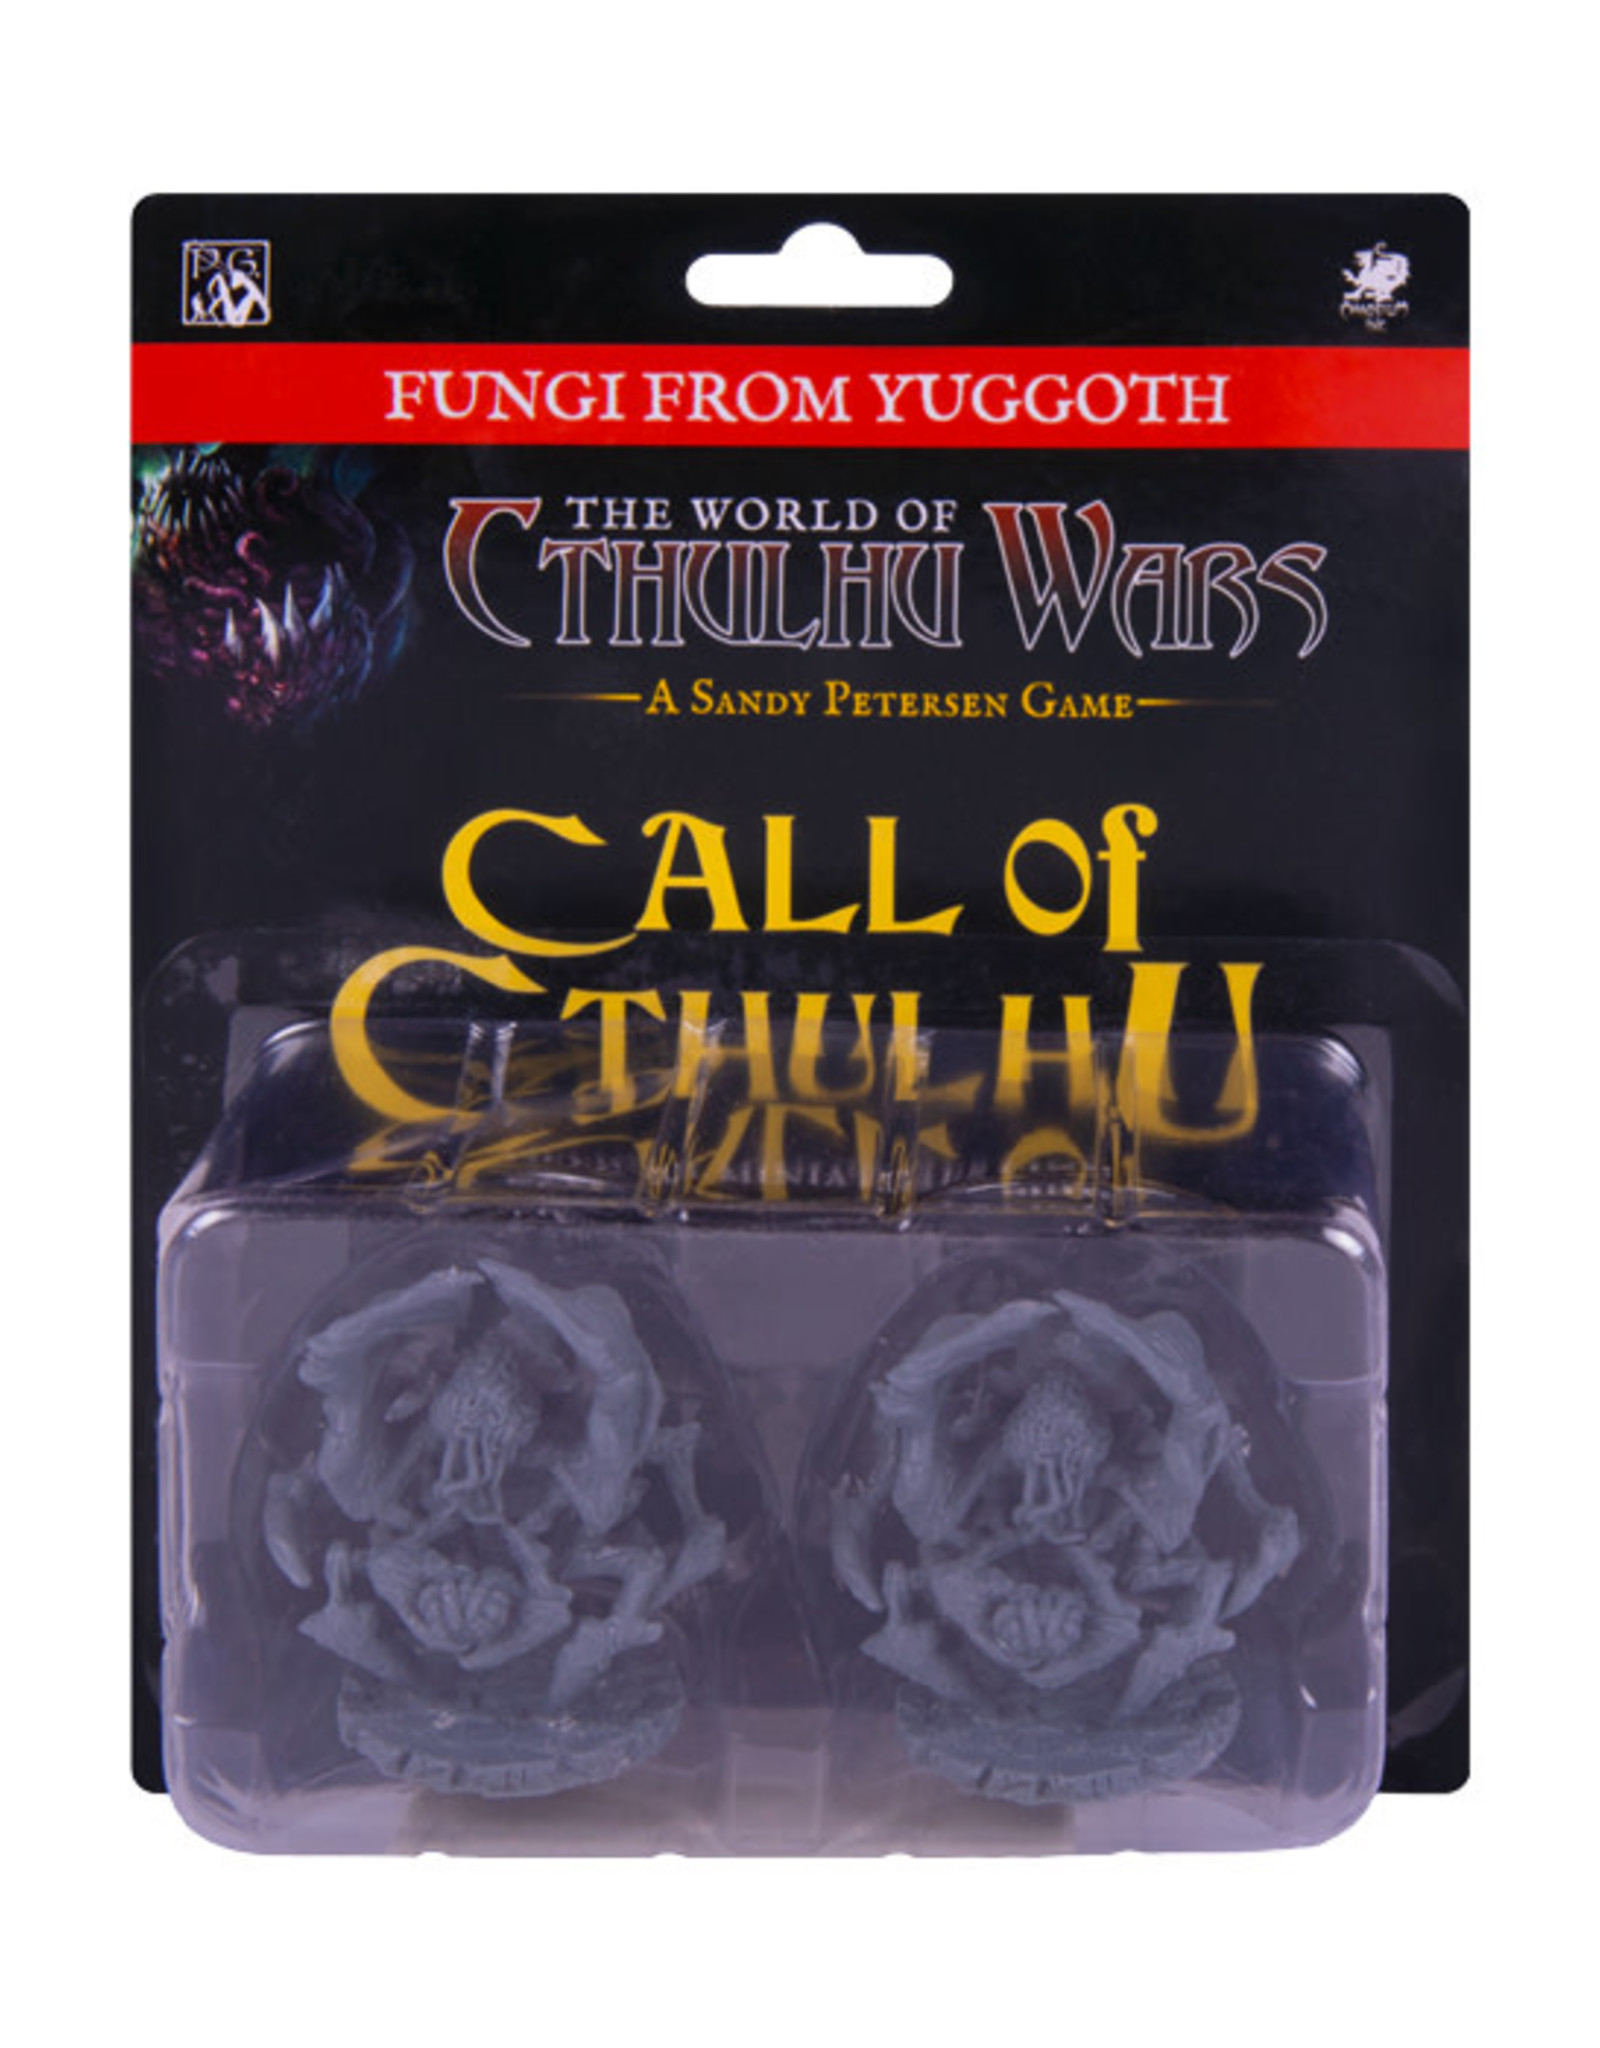 Call of Cthulhu: Miniature - Fungi from Yuggoth